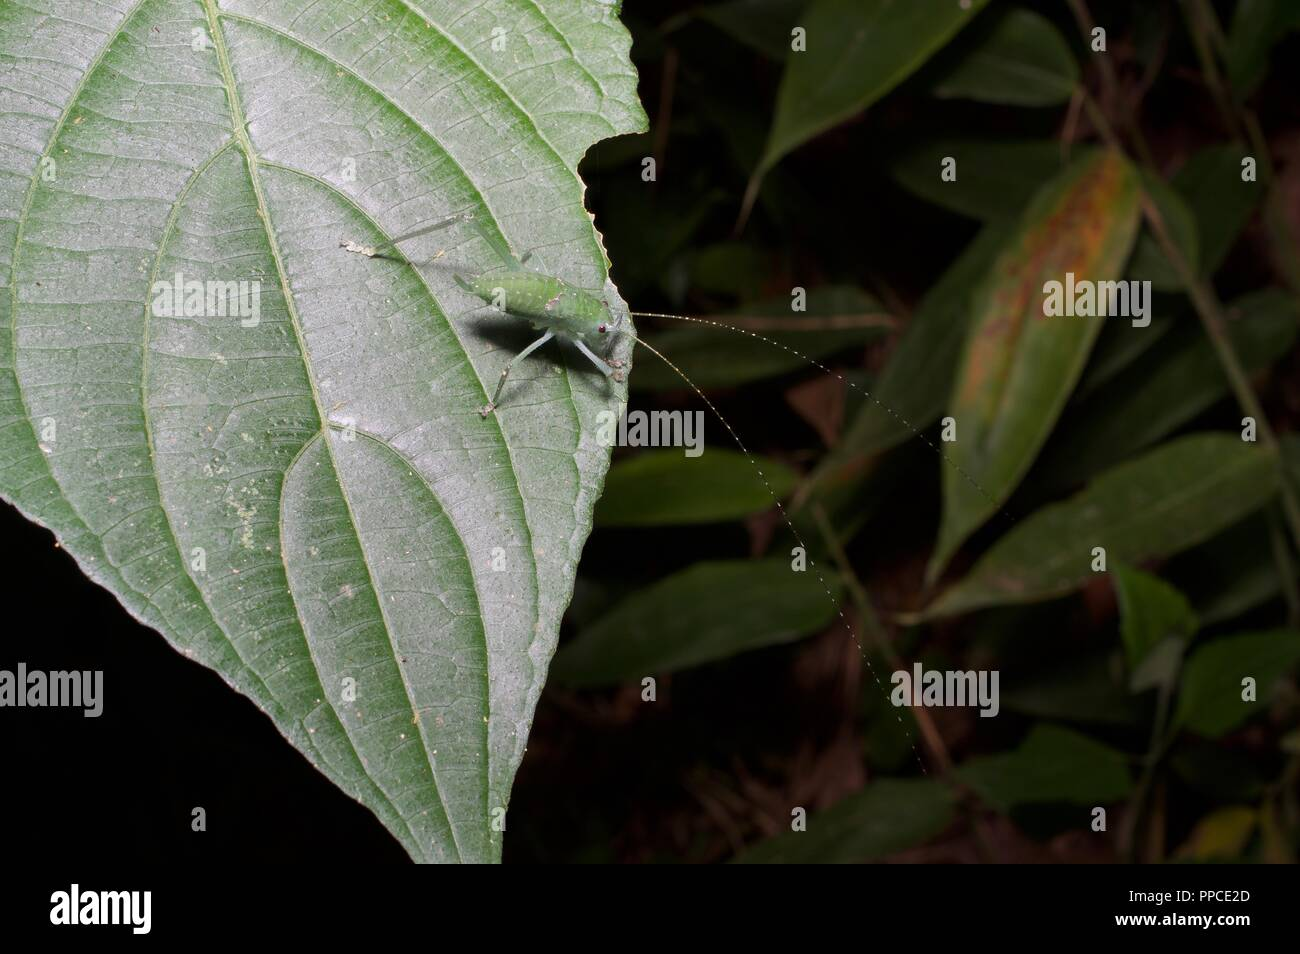 A tiny katydid nymph (family Tettigoniidae) on a leaf at night in Atewa Range Forest Reserve, Ghana, West Africa - Stock Image